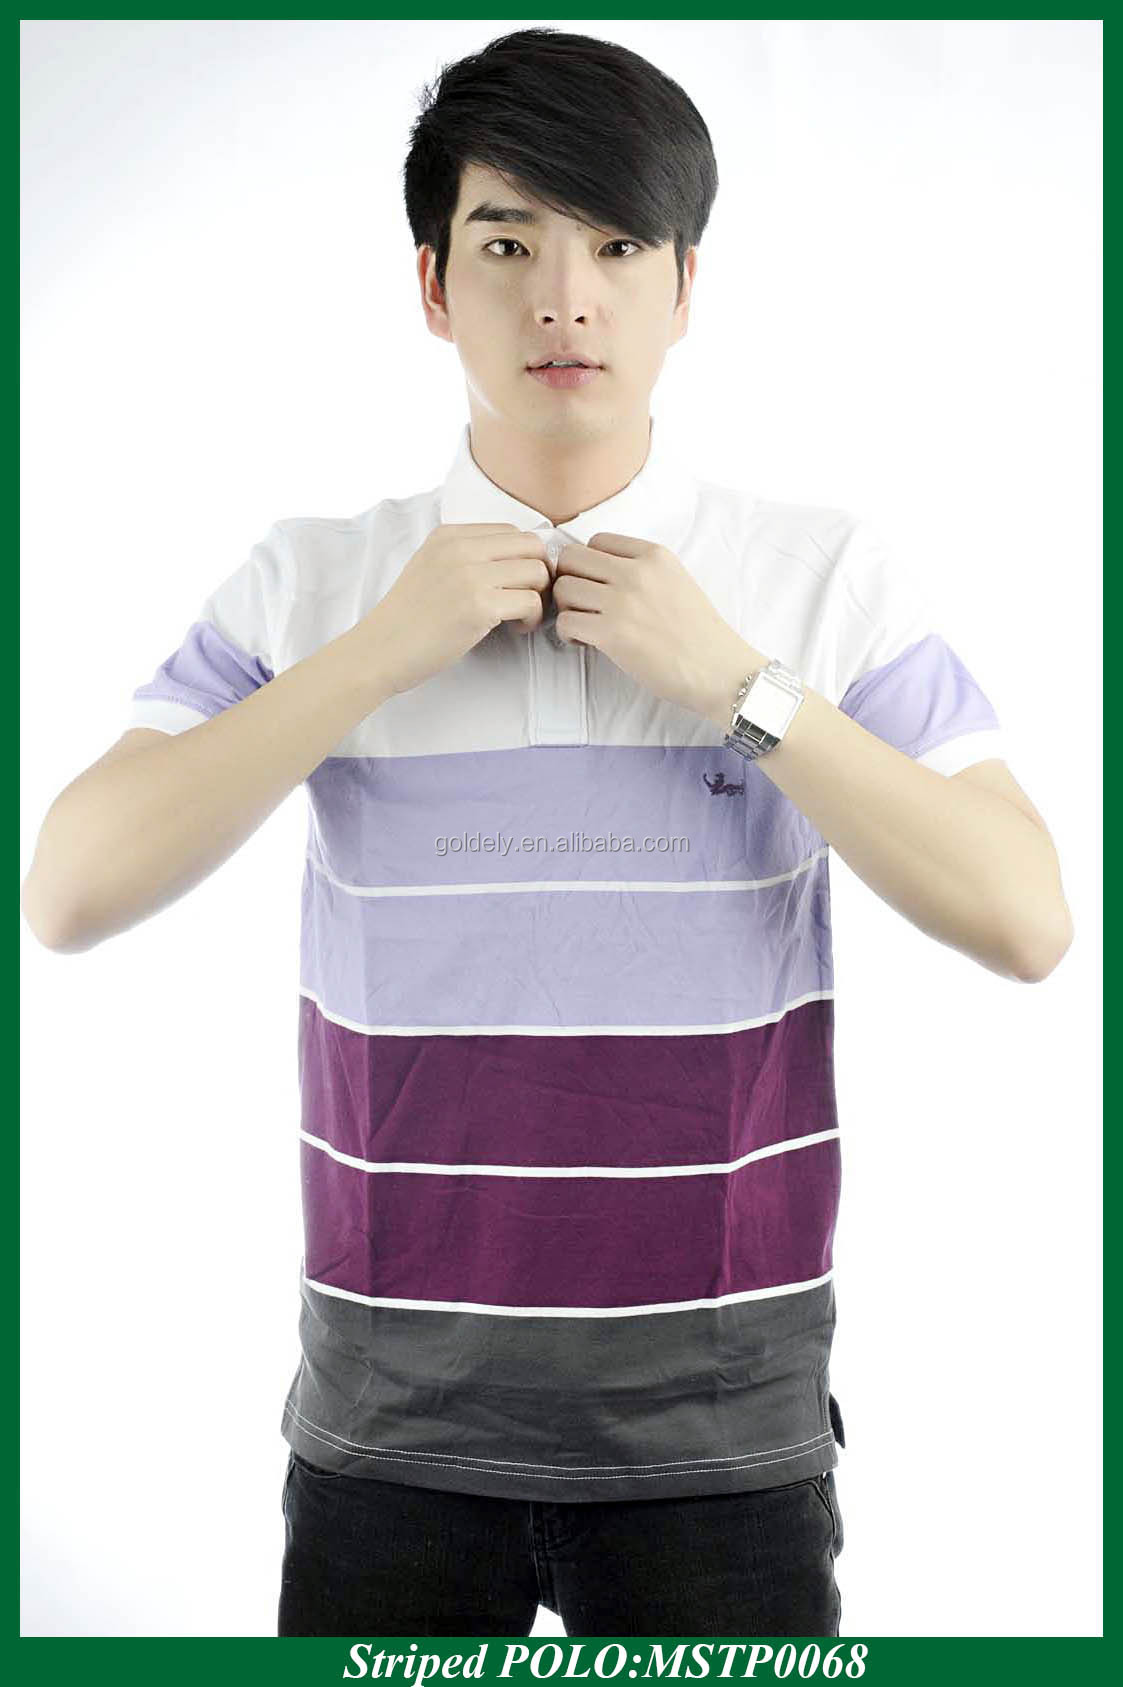 Stripe polo-68.jpg